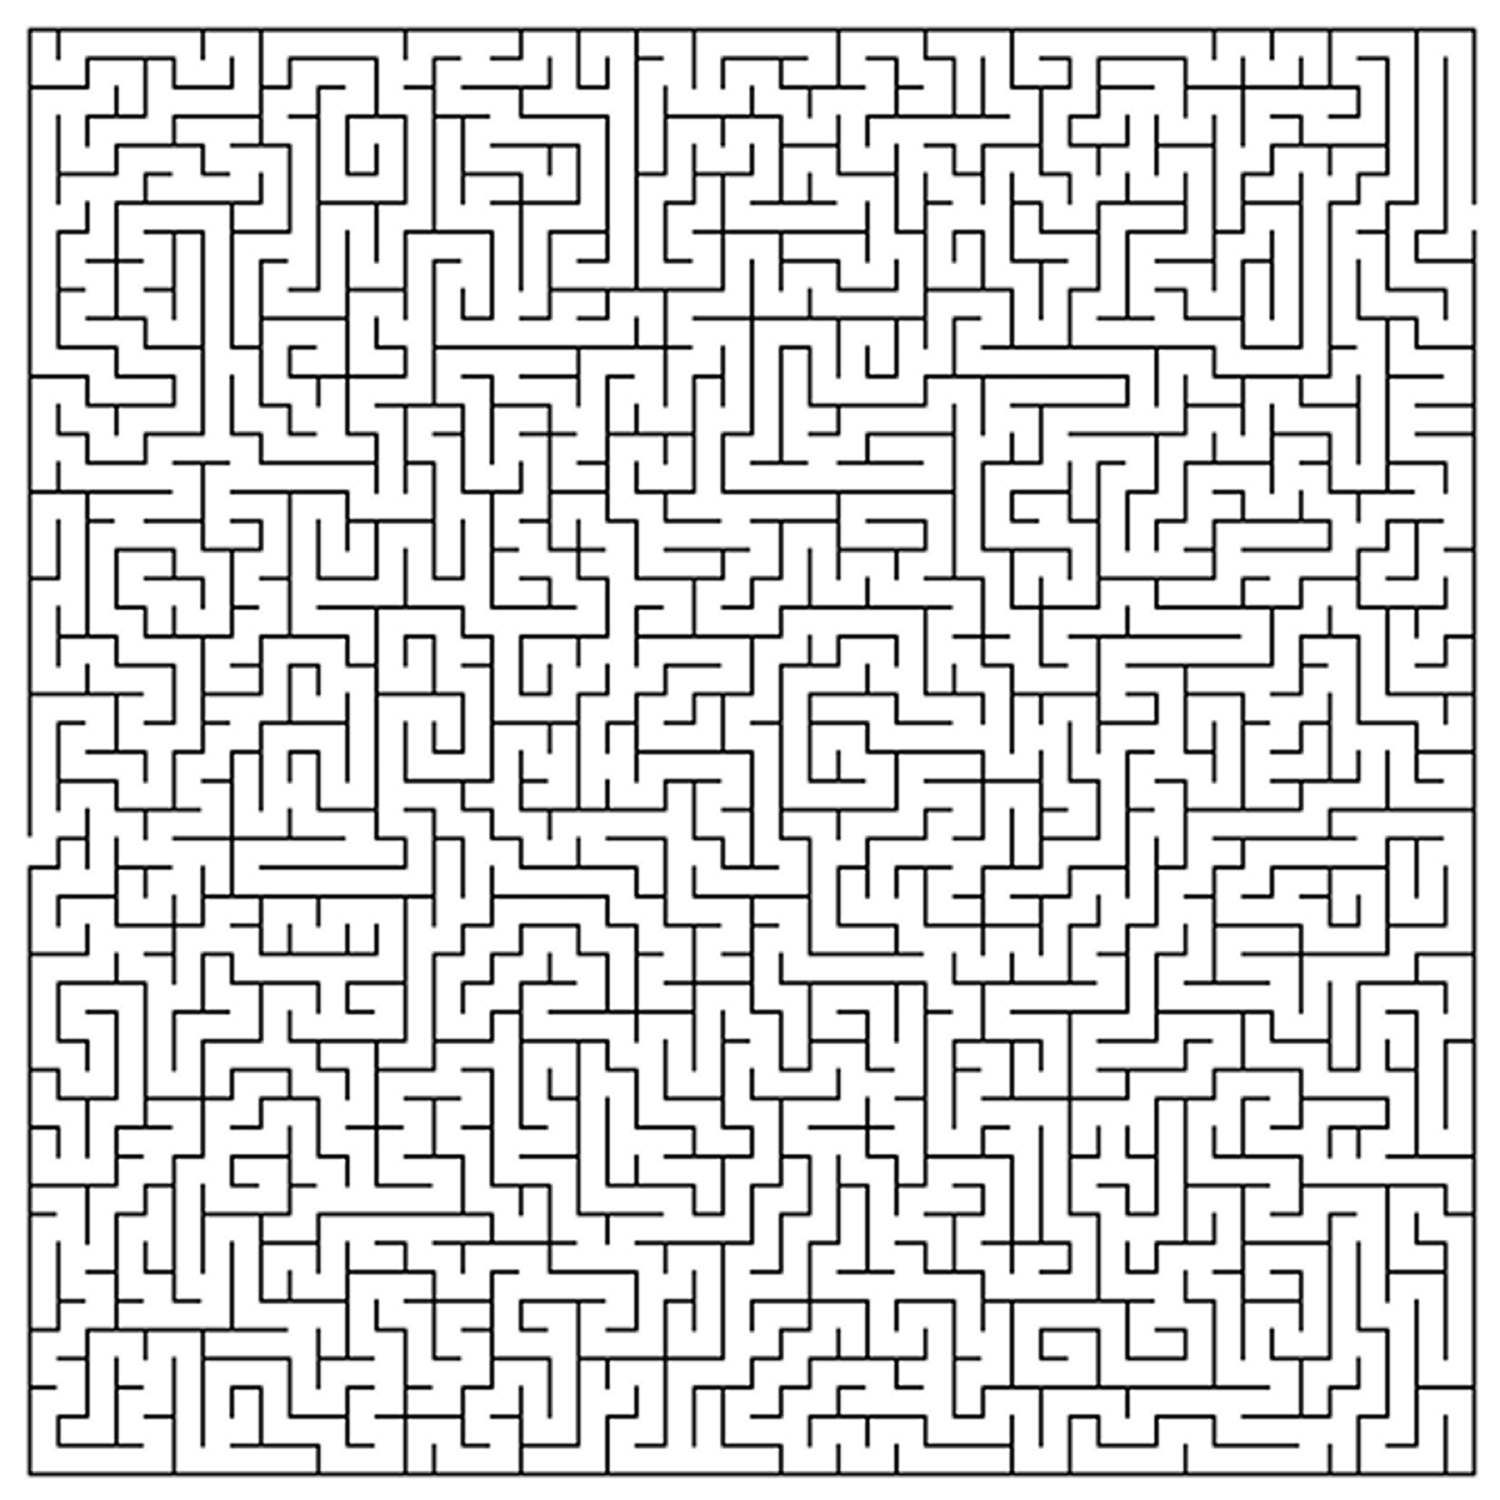 Printable Mazes For Adults For Brain Therapy And Practice